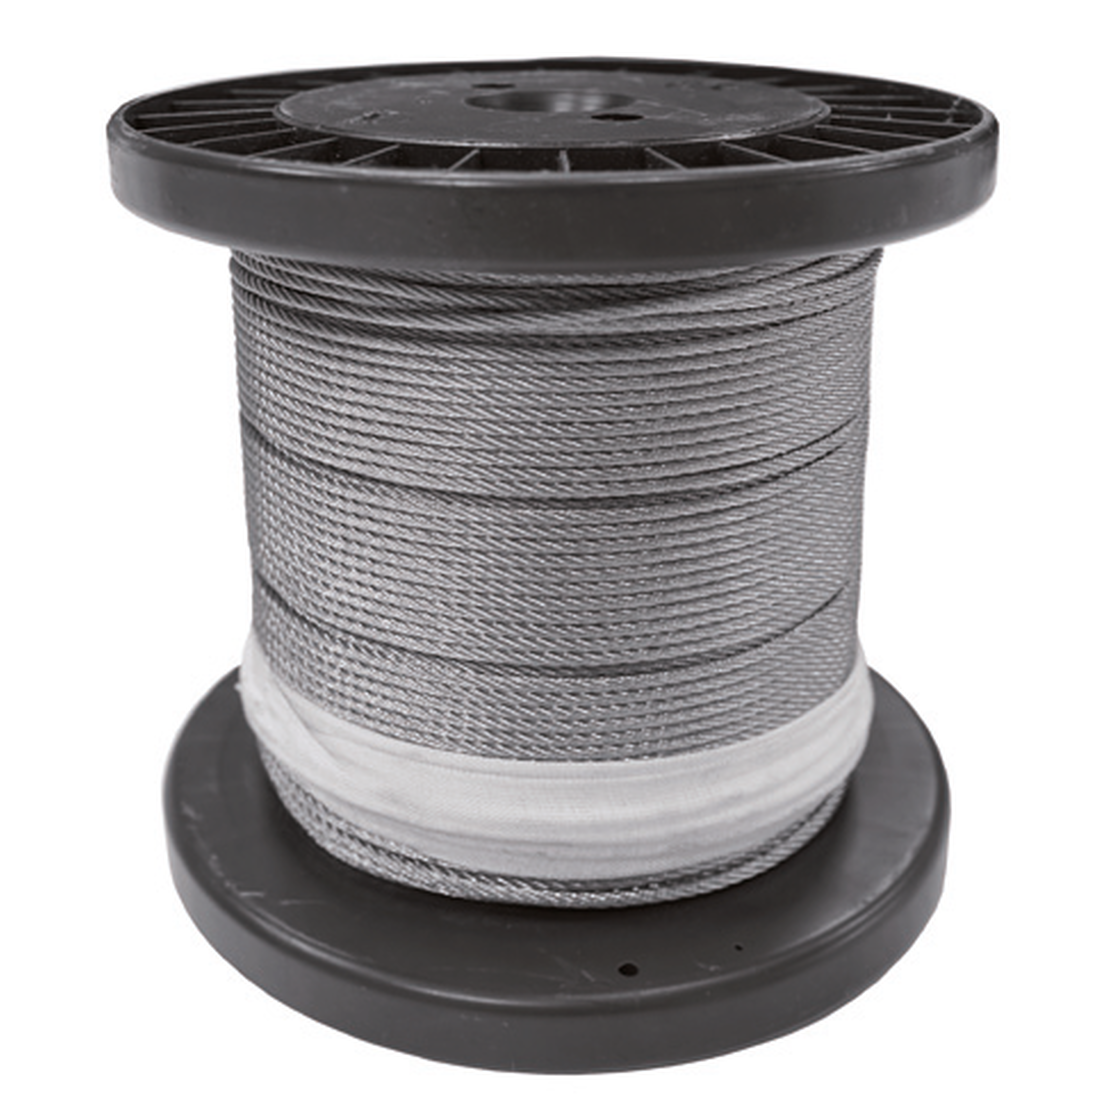 STAINLESS STEEL WIRE I CONSTRUCTION 7 x 6 +1, TRIMMED LENGTH OF WIRES I FOR 30KG